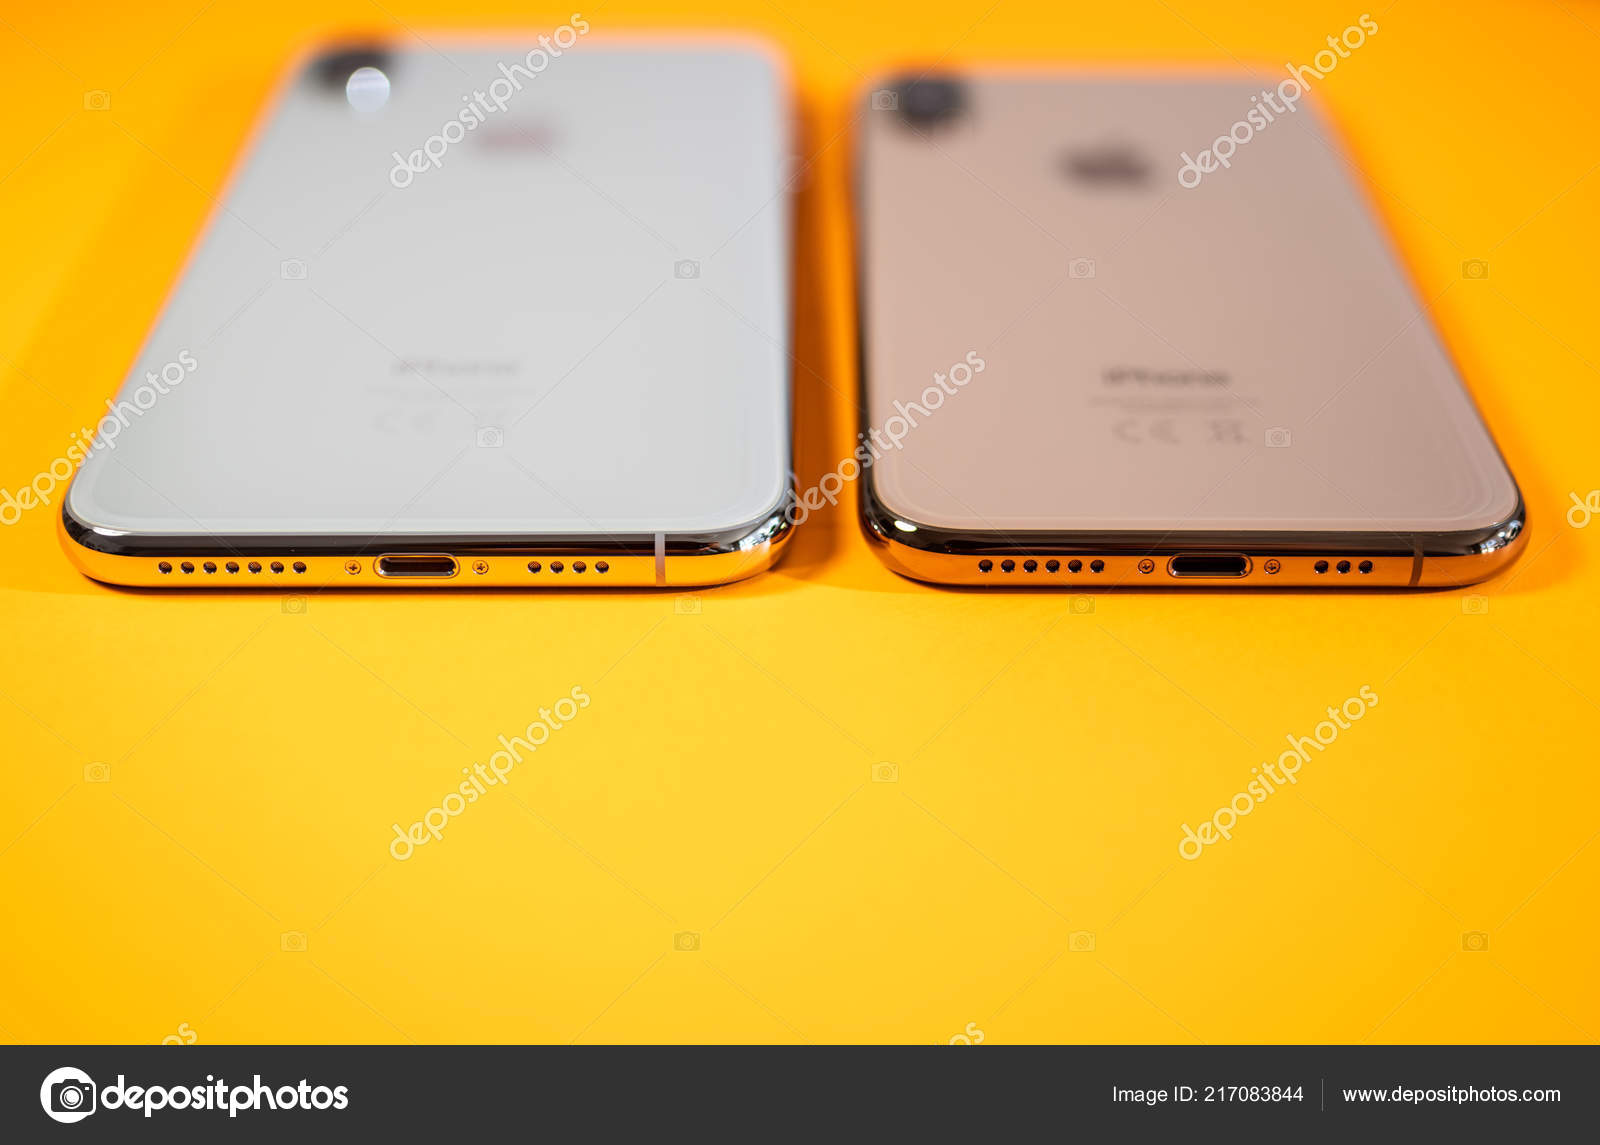 Rear View Of Apple Iphone Xs Max Orange Background Stock